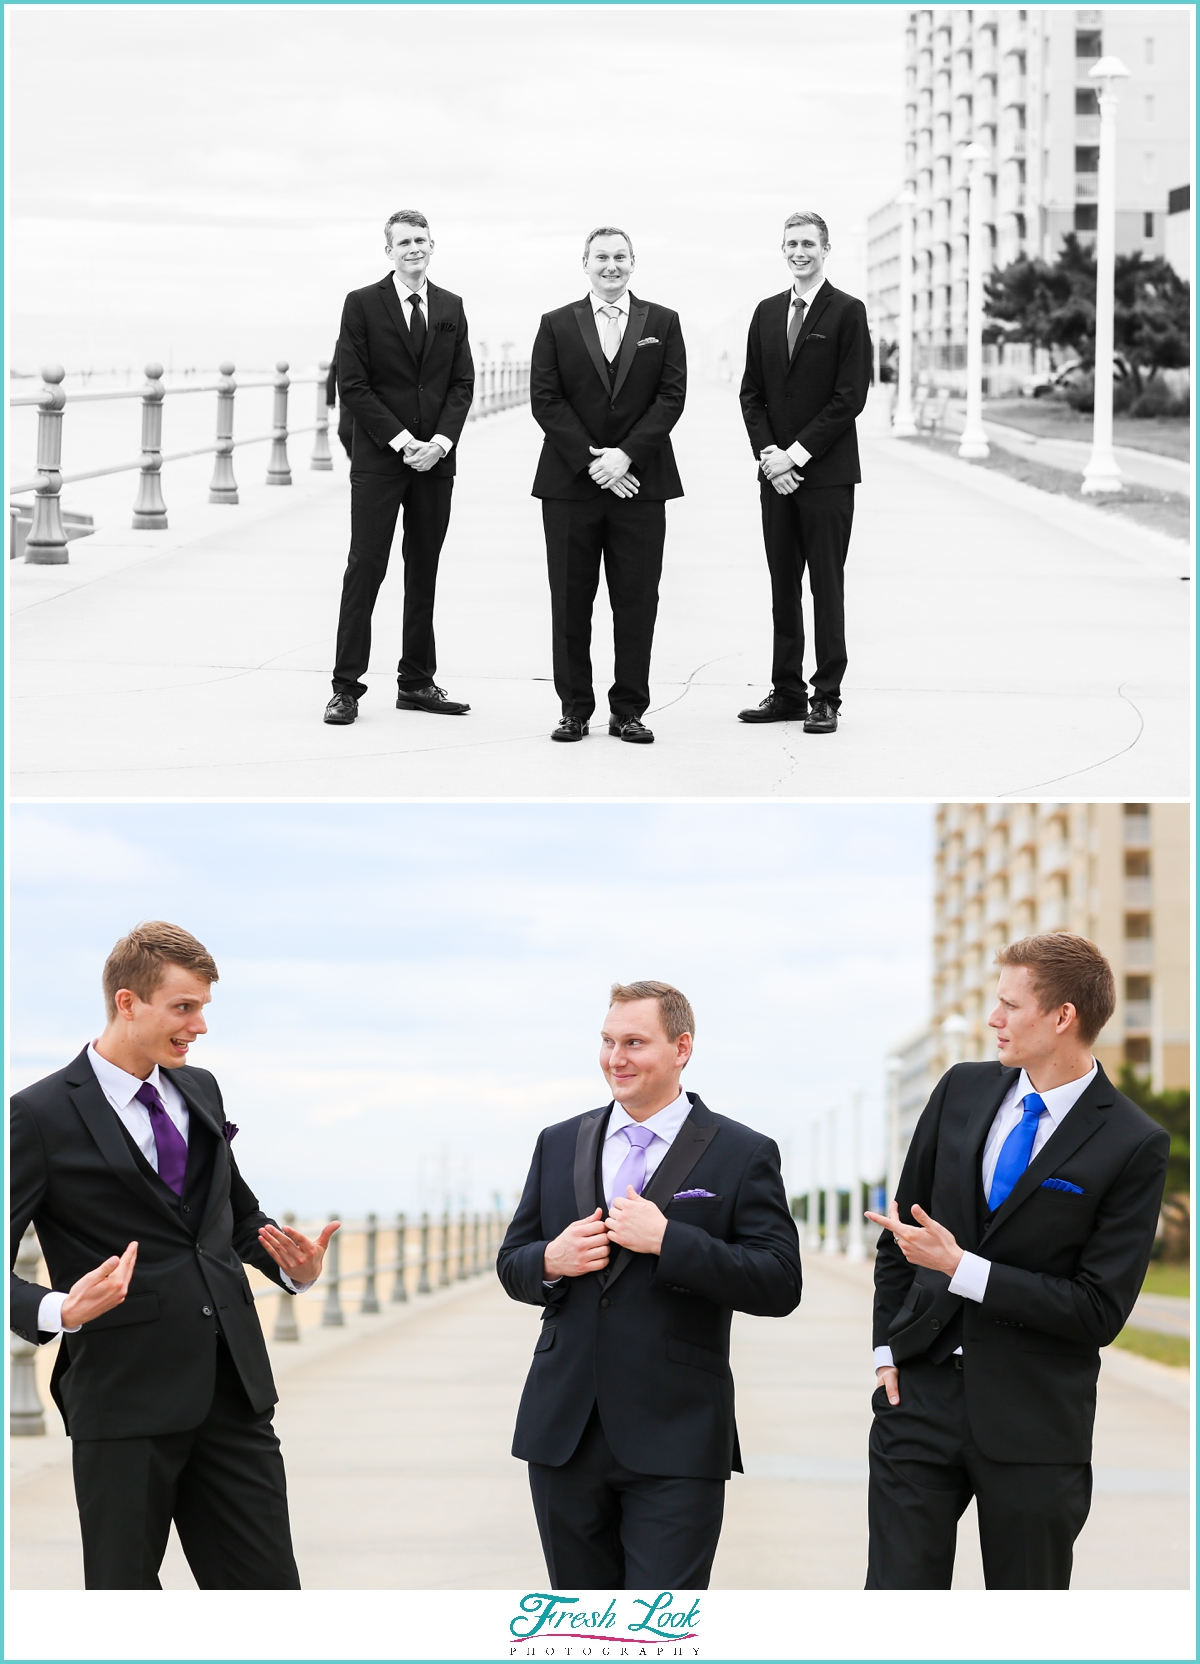 groom and groomsmen photo ideas